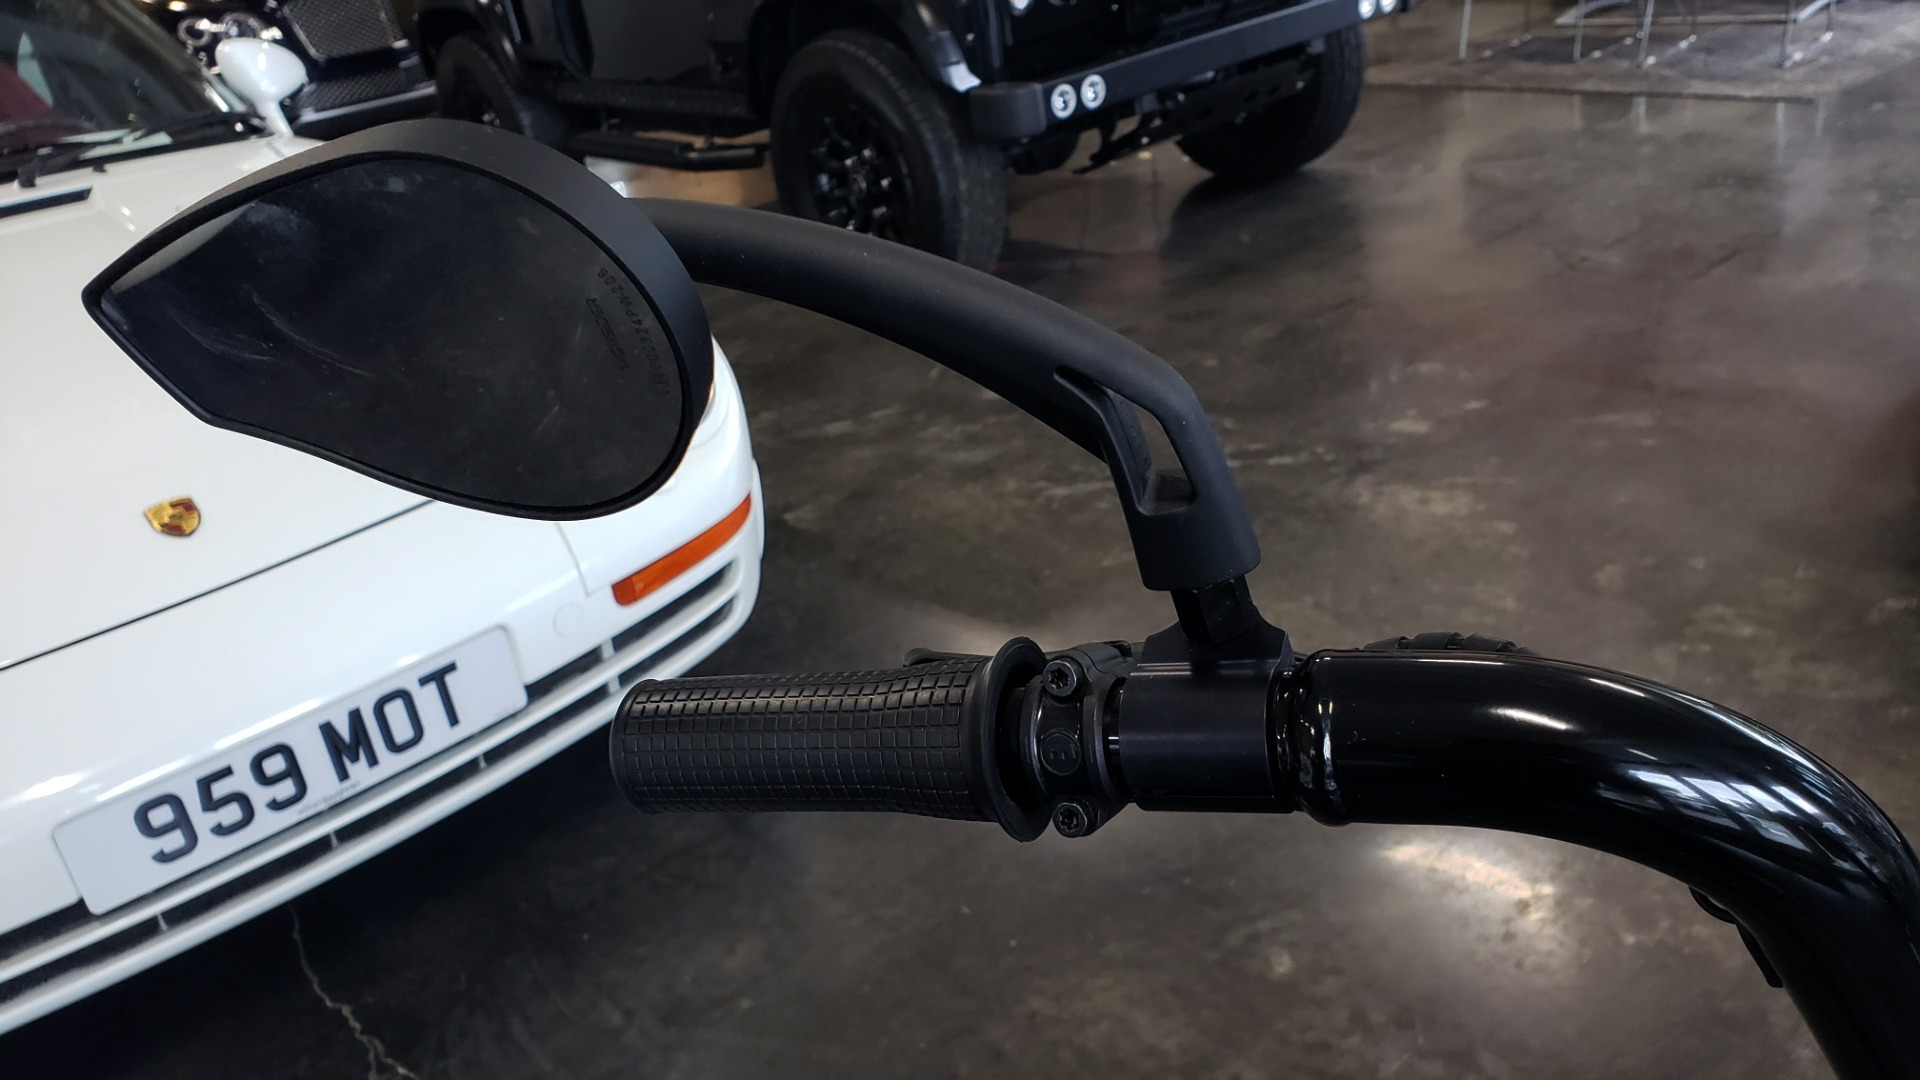 Used 2018 SCROOSER ELECTRIC SCOOTER SELF BALANCED / PEARL BLACK / 15.5 MPH / 34 MI RANGE for sale $1,799 at Formula Imports in Charlotte NC 28227 10